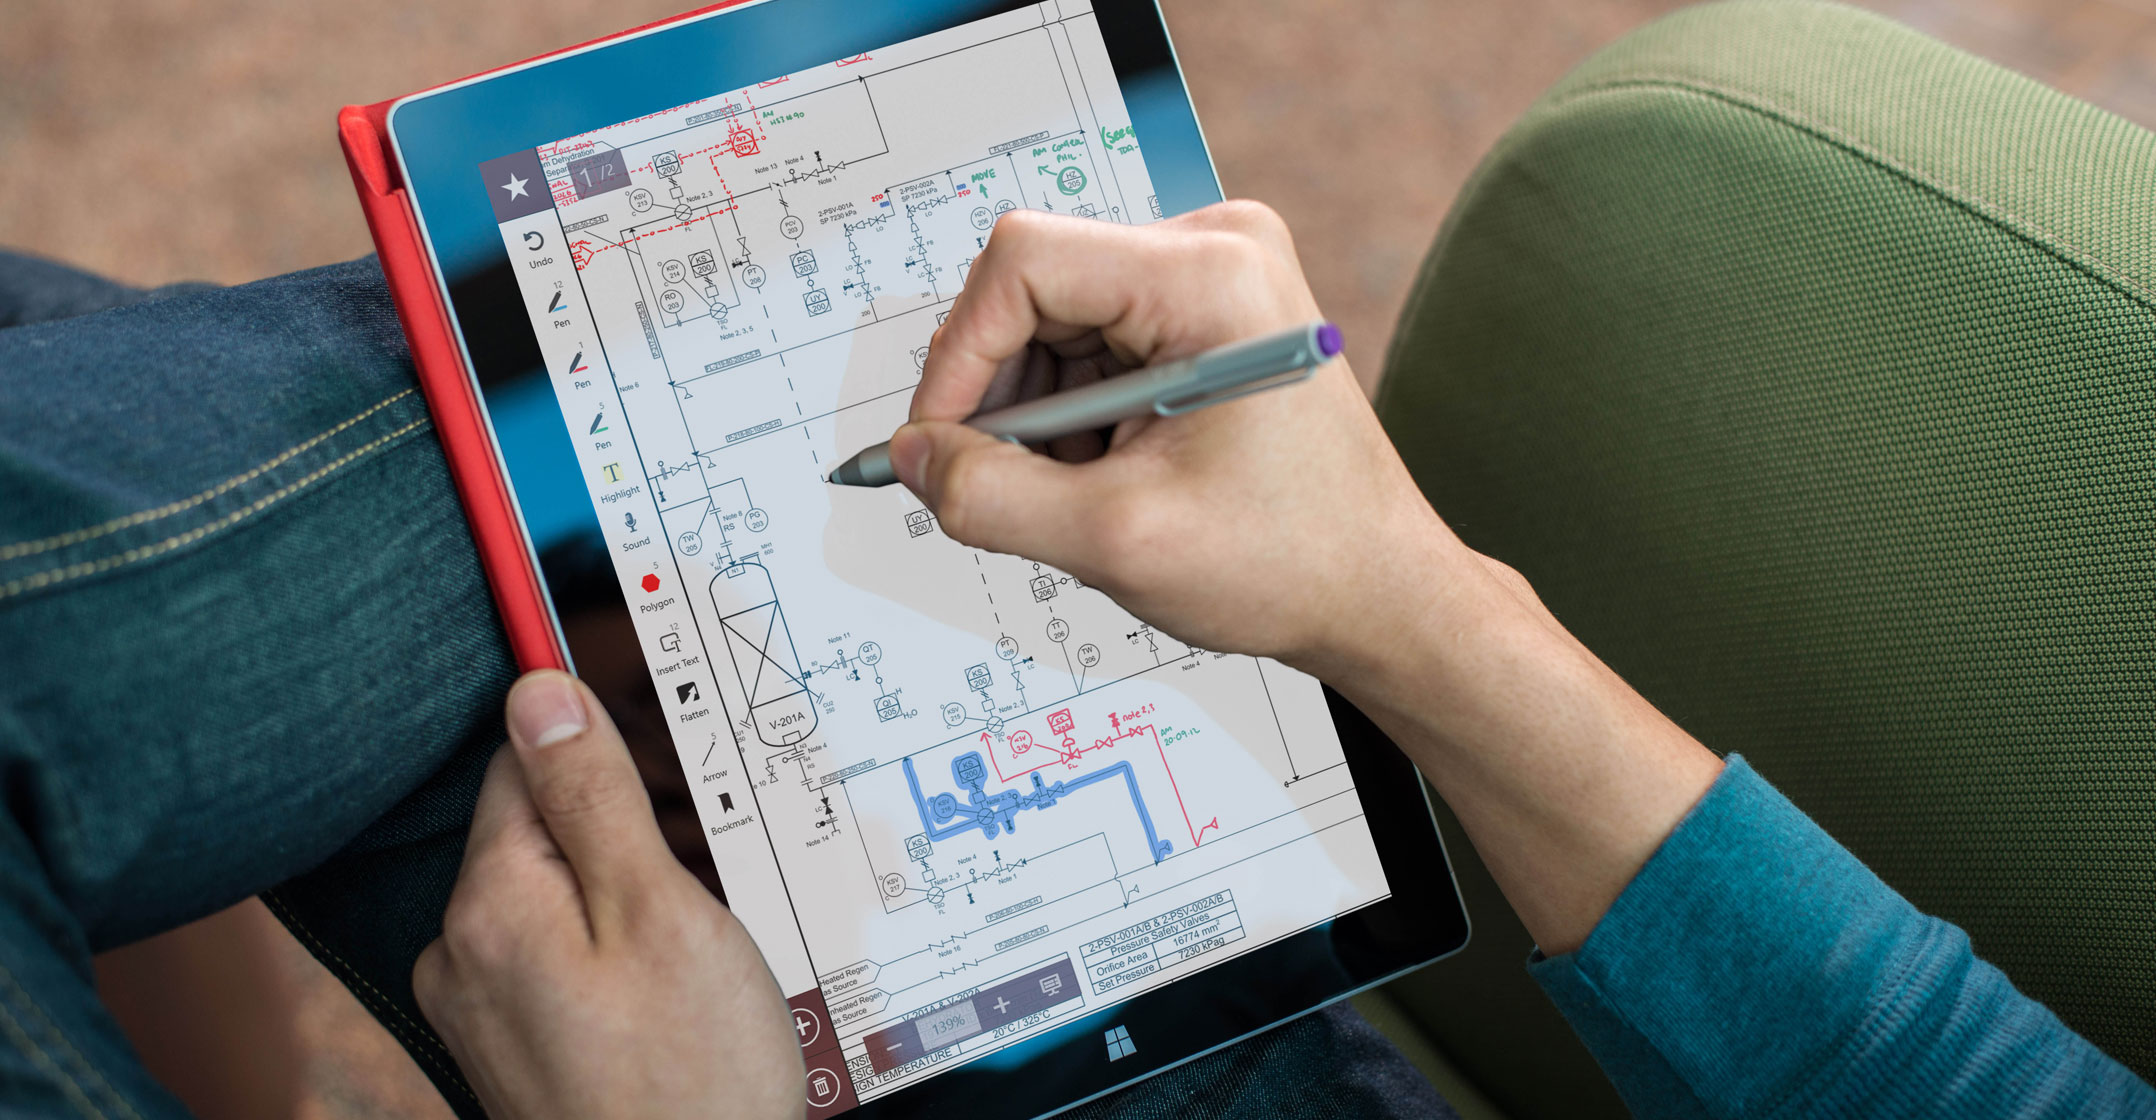 Microsoft reportedly planning cheaper Surface tablets to compete against $329 iPad